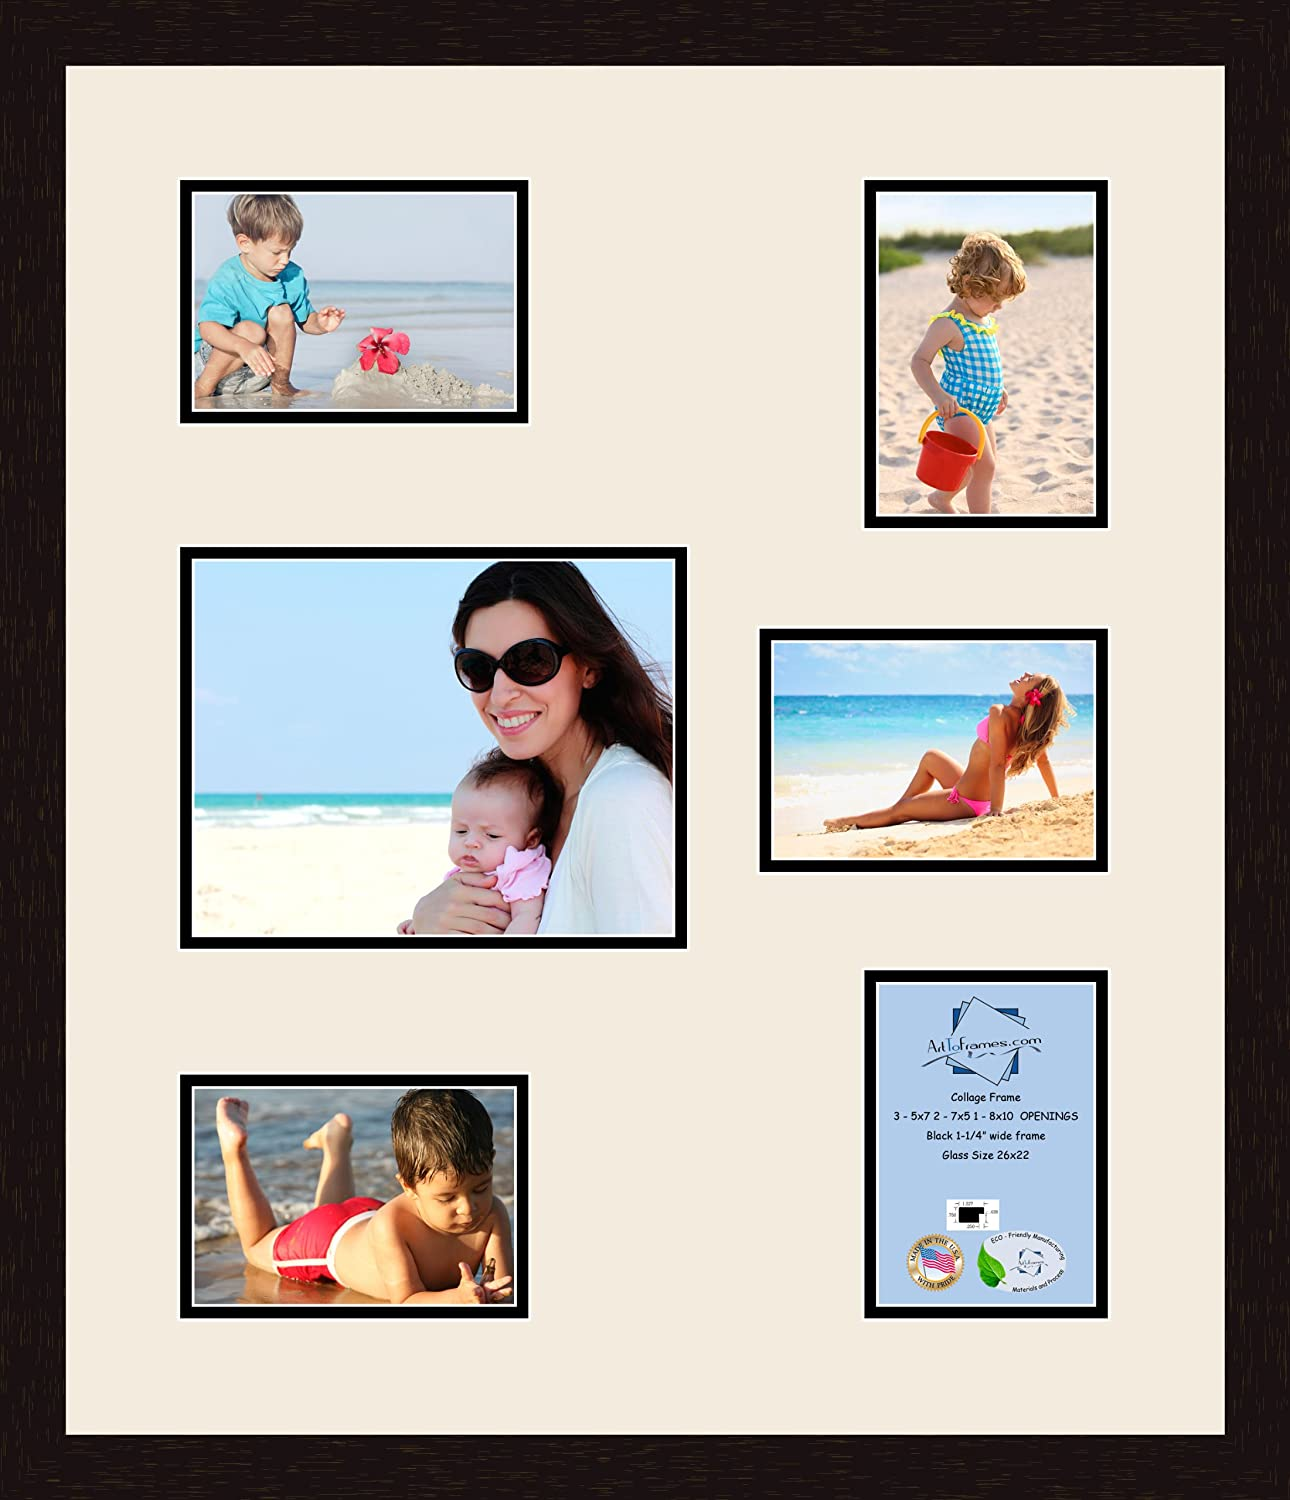 Art to Frames Double-Multimat-362-824//89-FRBW26061 Collage Frame Photo Mat Double Mat with 5-5x7 and 1-8x10 Openings and Espresso Frame